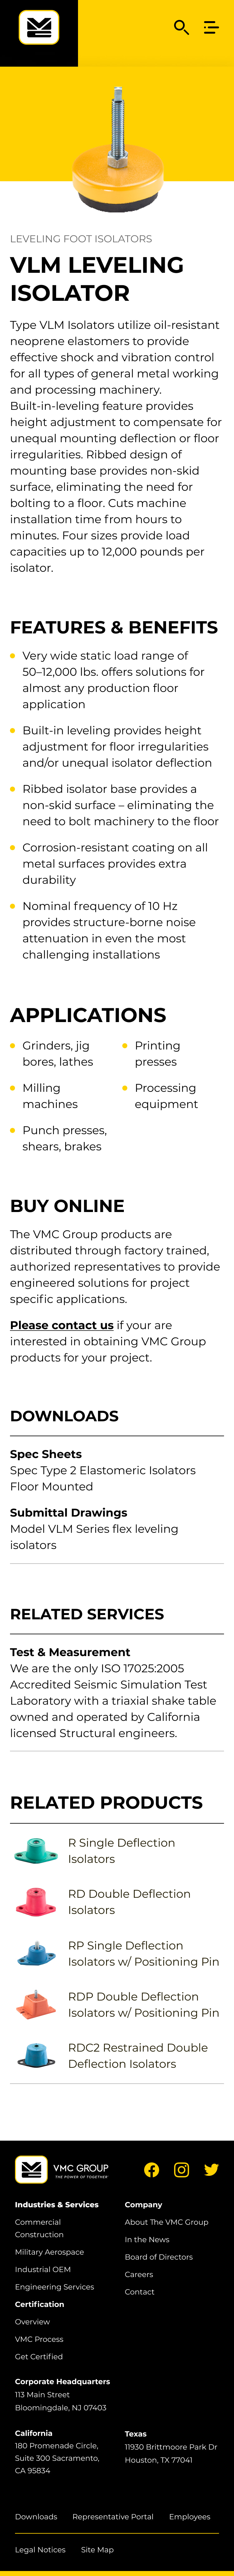 VMC Group Product Page, mobile